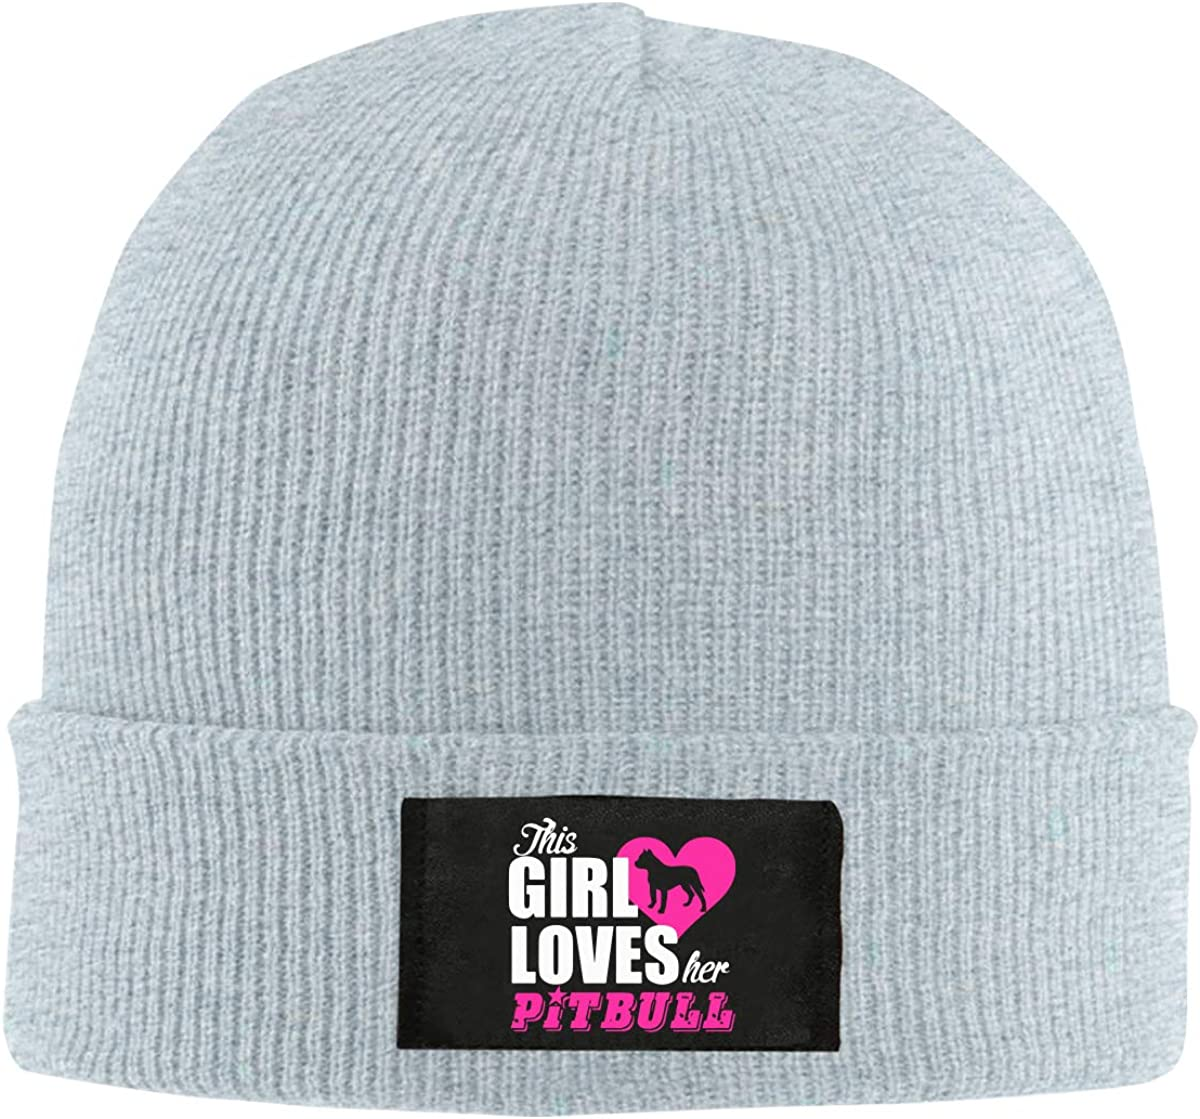 This Girl Loves Her Pitbull1 Women and Men Knitted Hat Comfortable Skull Cap